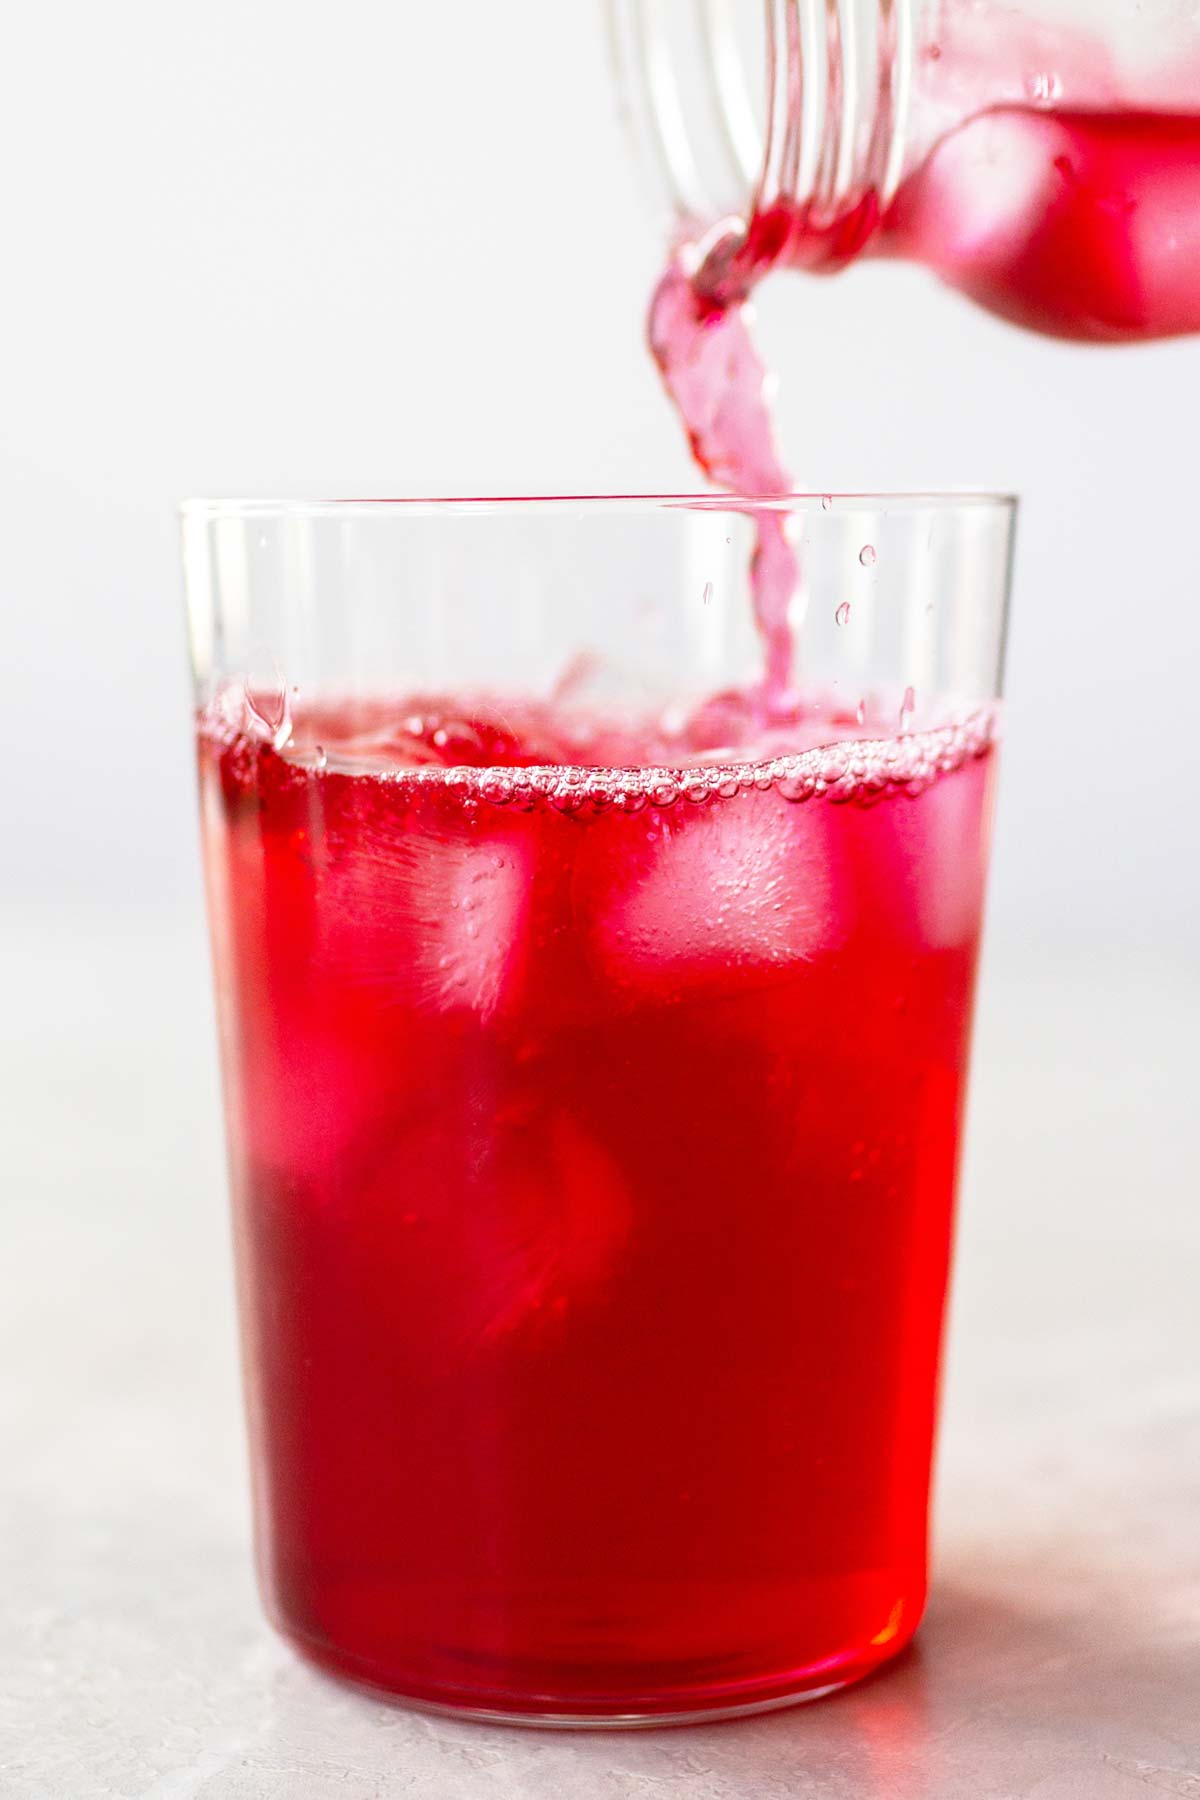 Pouring Iced Passion Tango Tea into a cup.